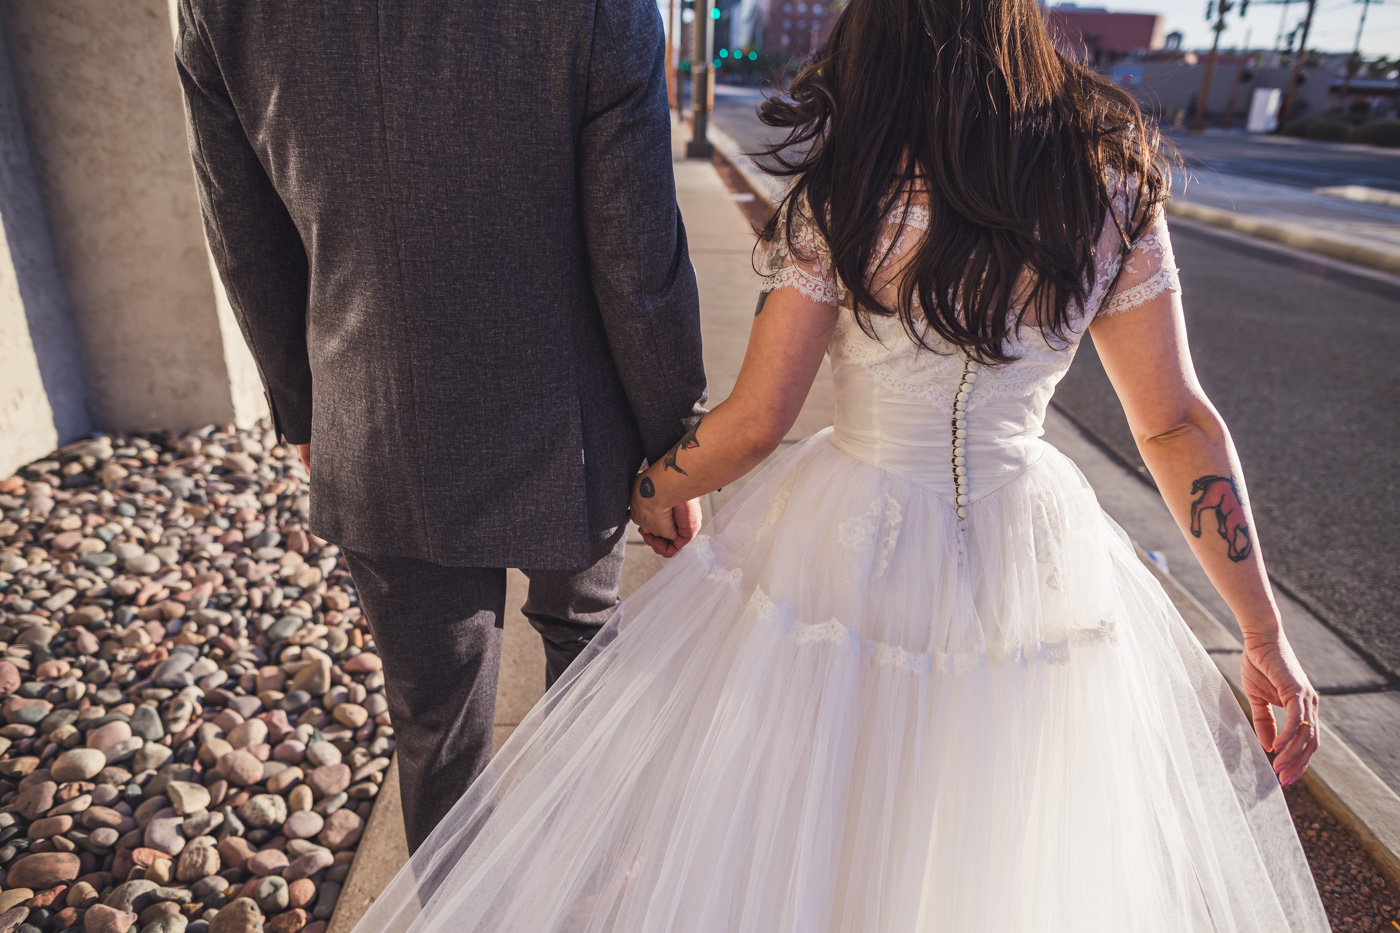 bride-and-groom-hand-in-hand